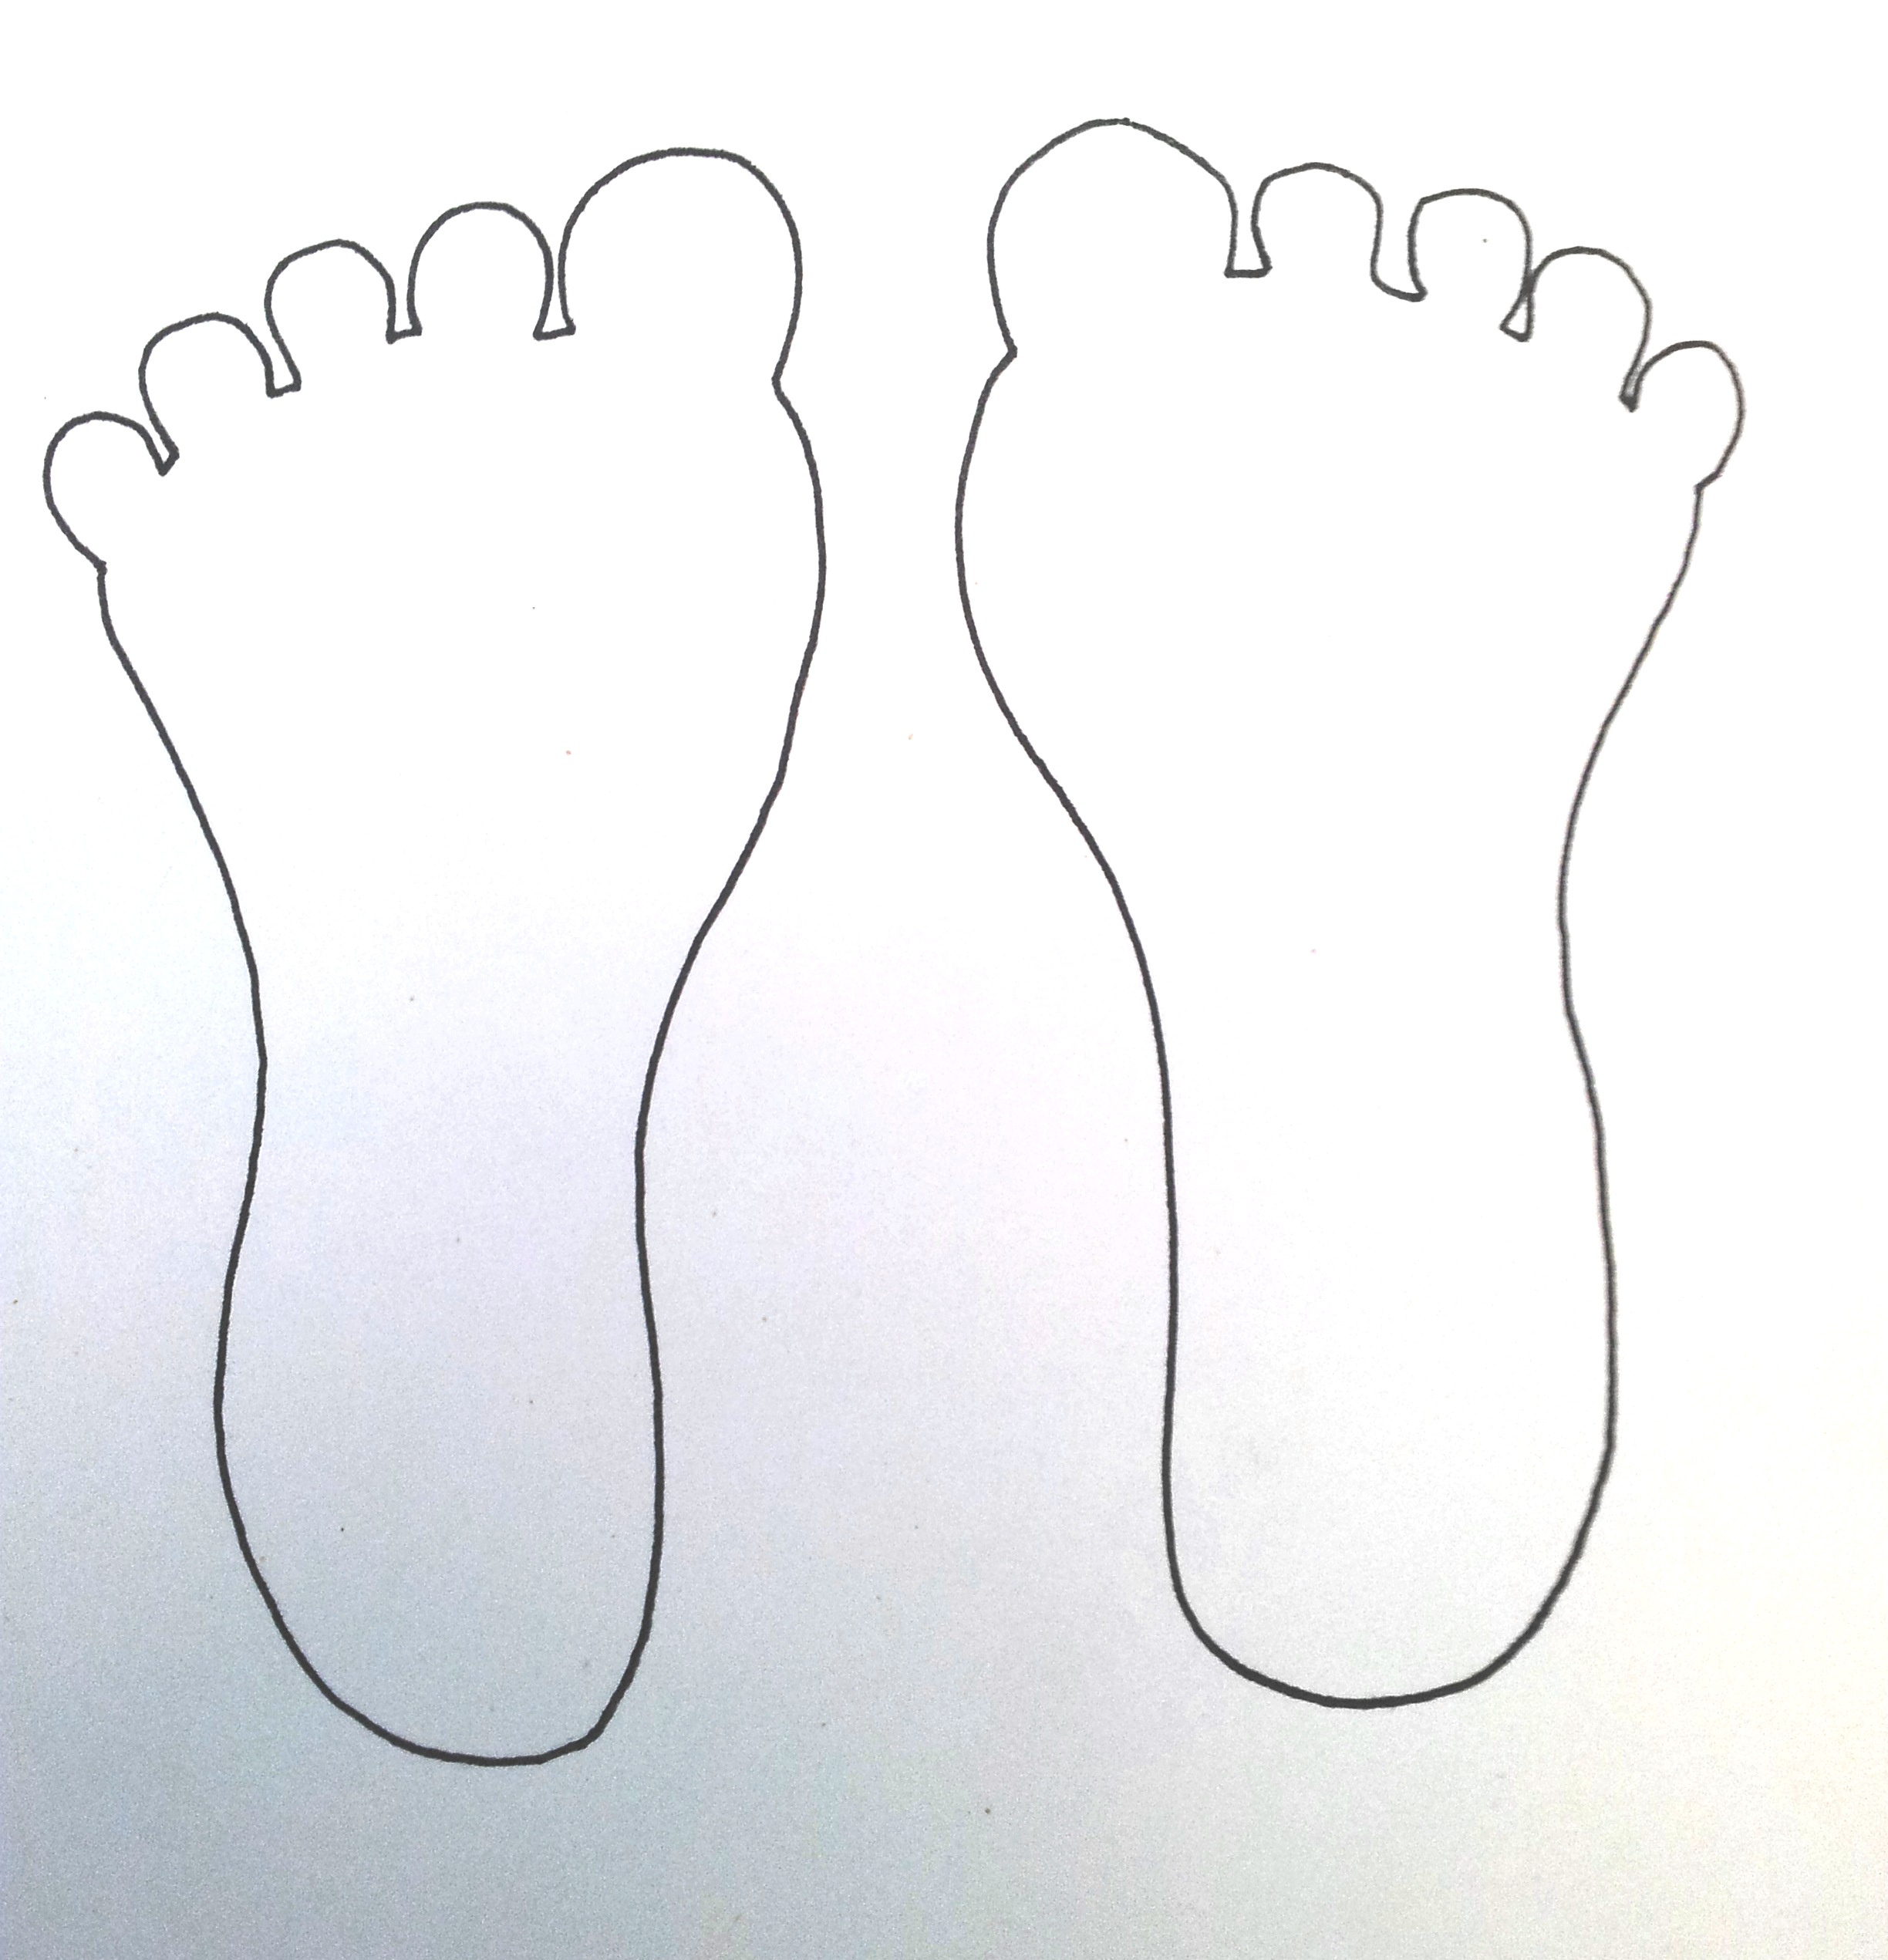 Feet clipart giant foot. Template october thoughts works